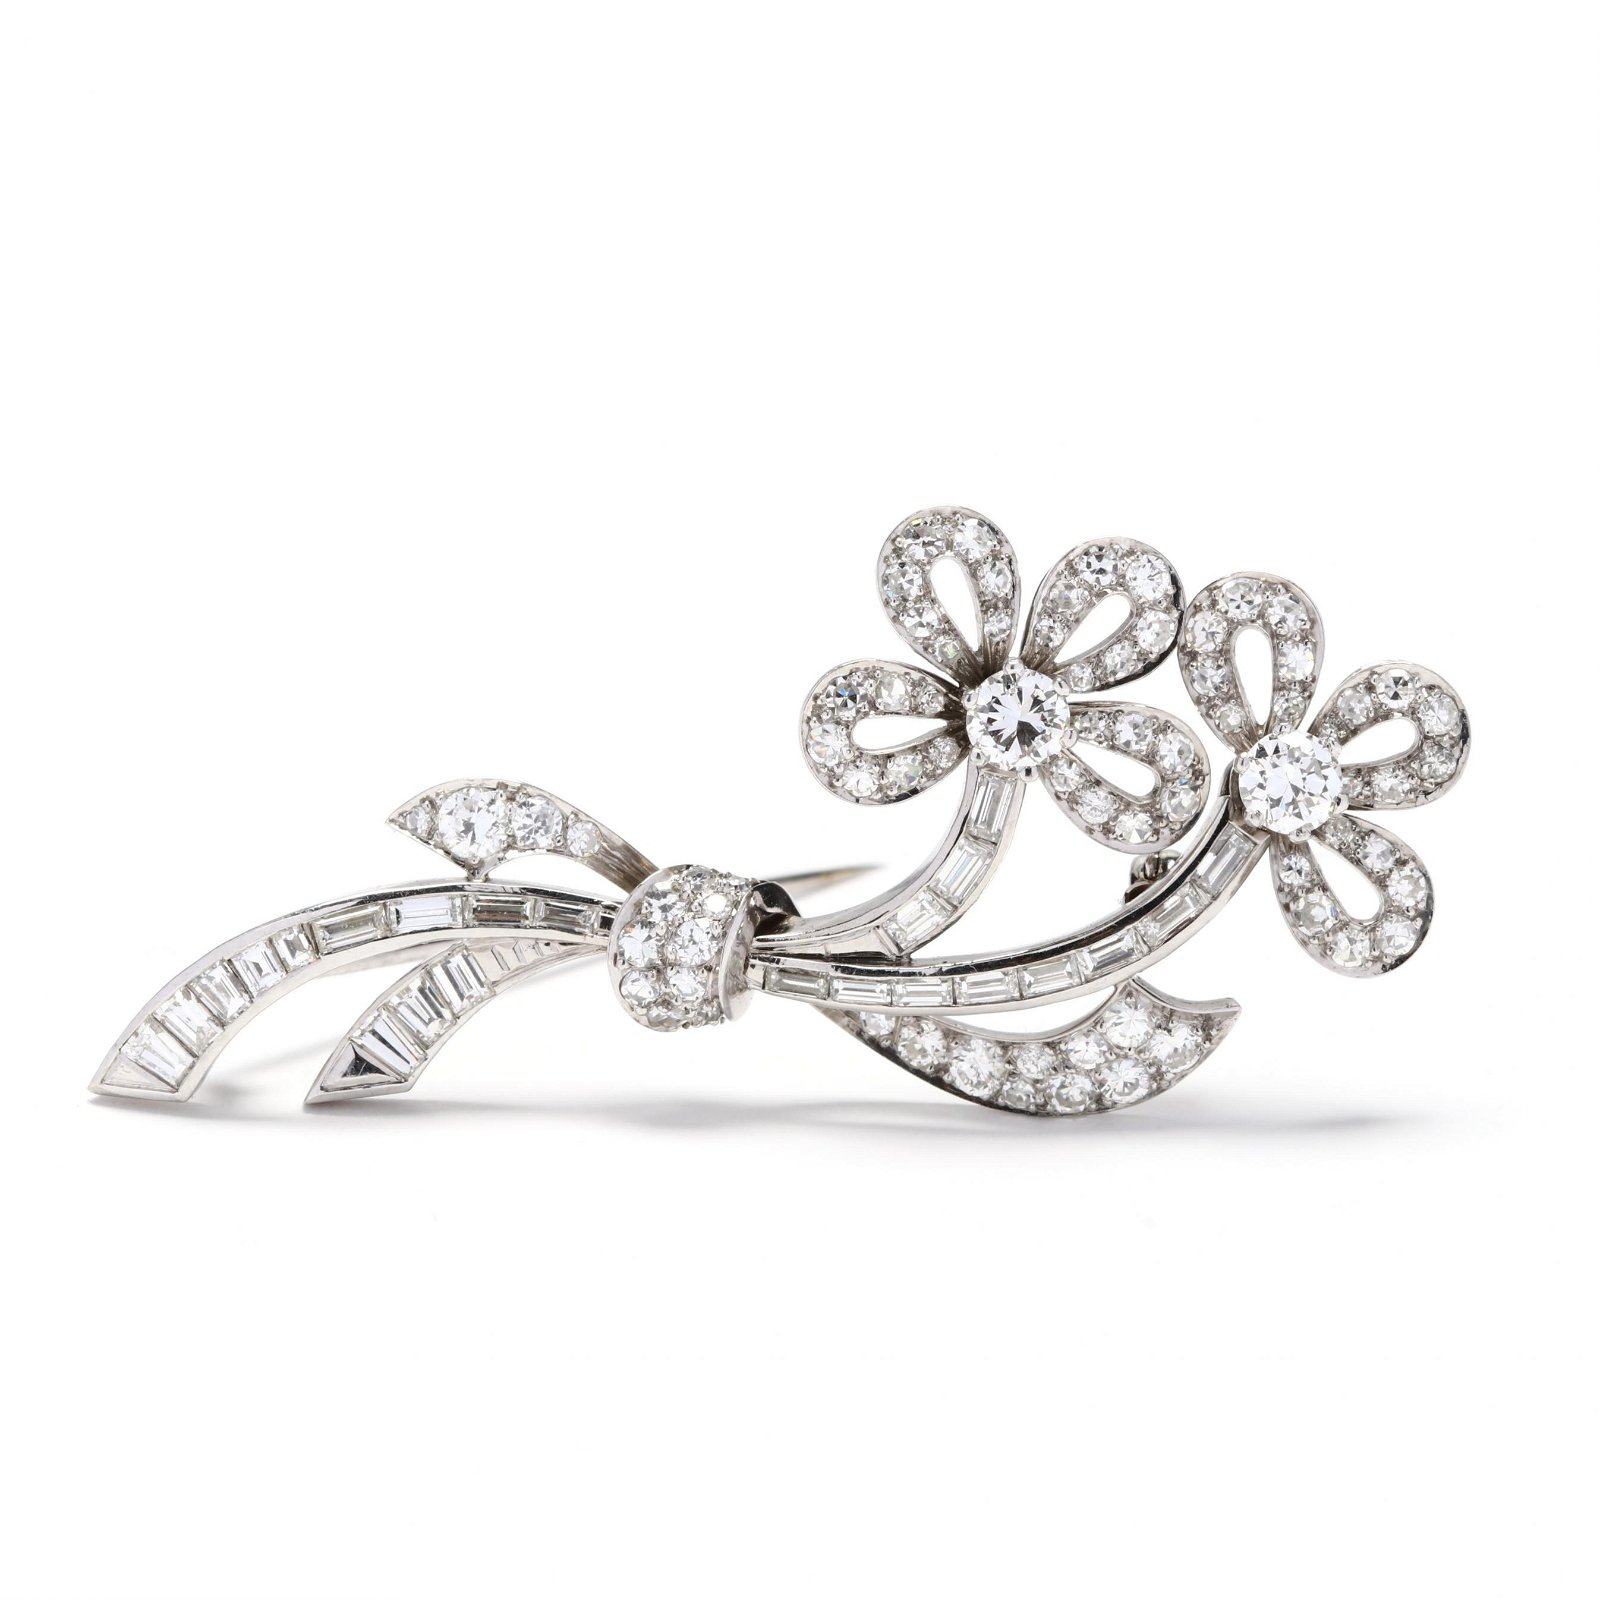 Vintage Platinum and Diamond Floral Spray Brooch